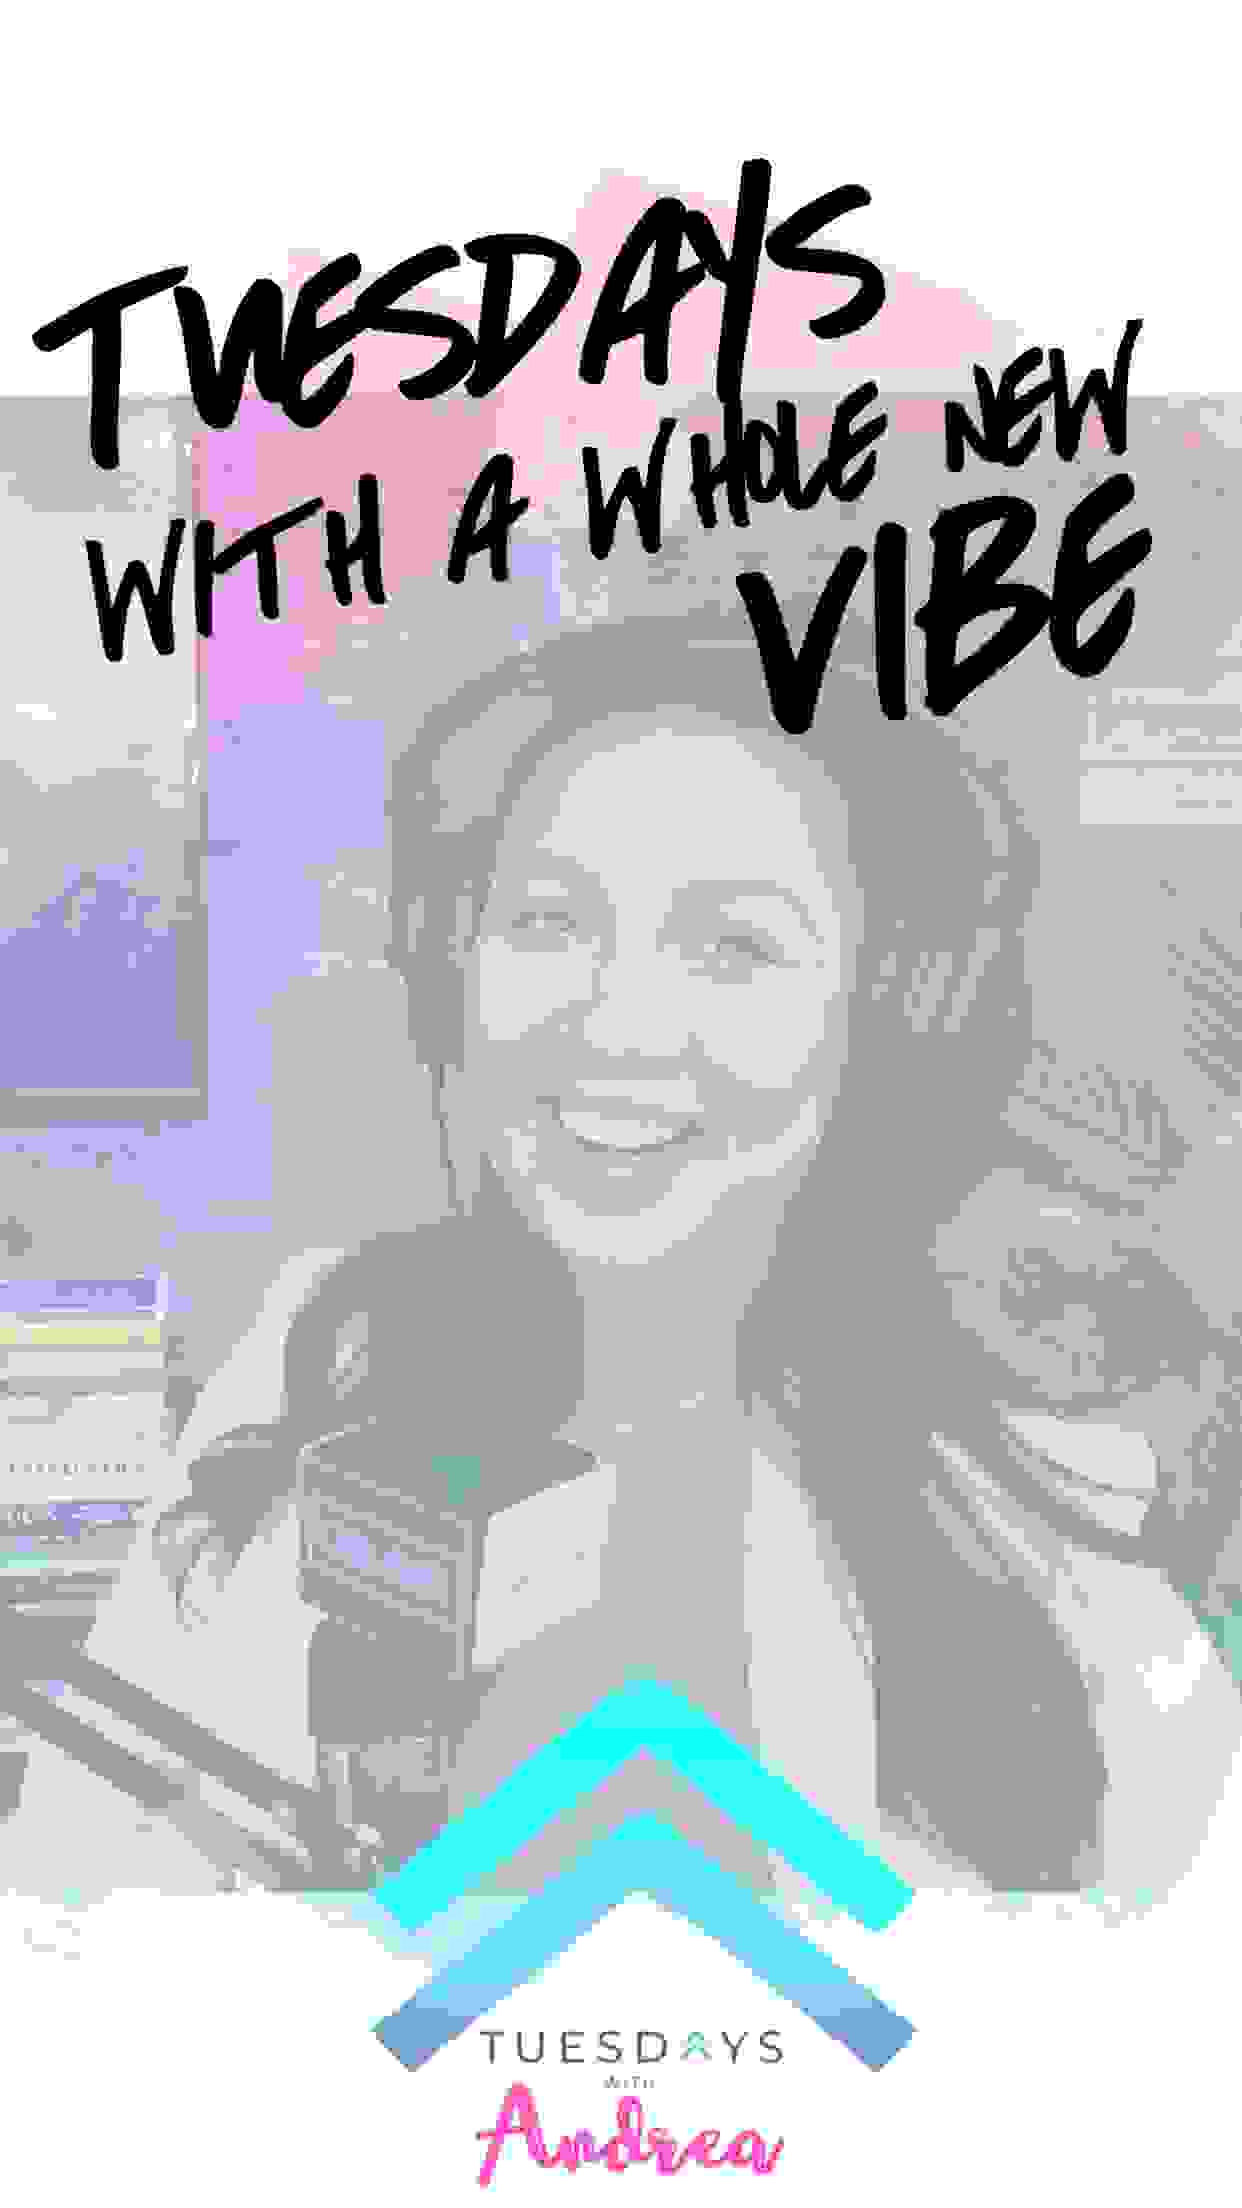 working people shining to guide and inspire humanity forward. leadership. community. podcast. politician, house of representatives, illinois, state representative, elected officials, politics, government, leadership, voice, working people, female, latina, women, professional, working mom, latinx, tuesdays with morrie, tuesday, tuesdays, vibe, podcast, podcaster, headphones, smiling, microphone, podcast home studio, diy,  inspired living, audio and video podcast, podcaster, leadership, soul and spirit, good vibes, tech, tools, strengthen, uplift humanity, community, hope